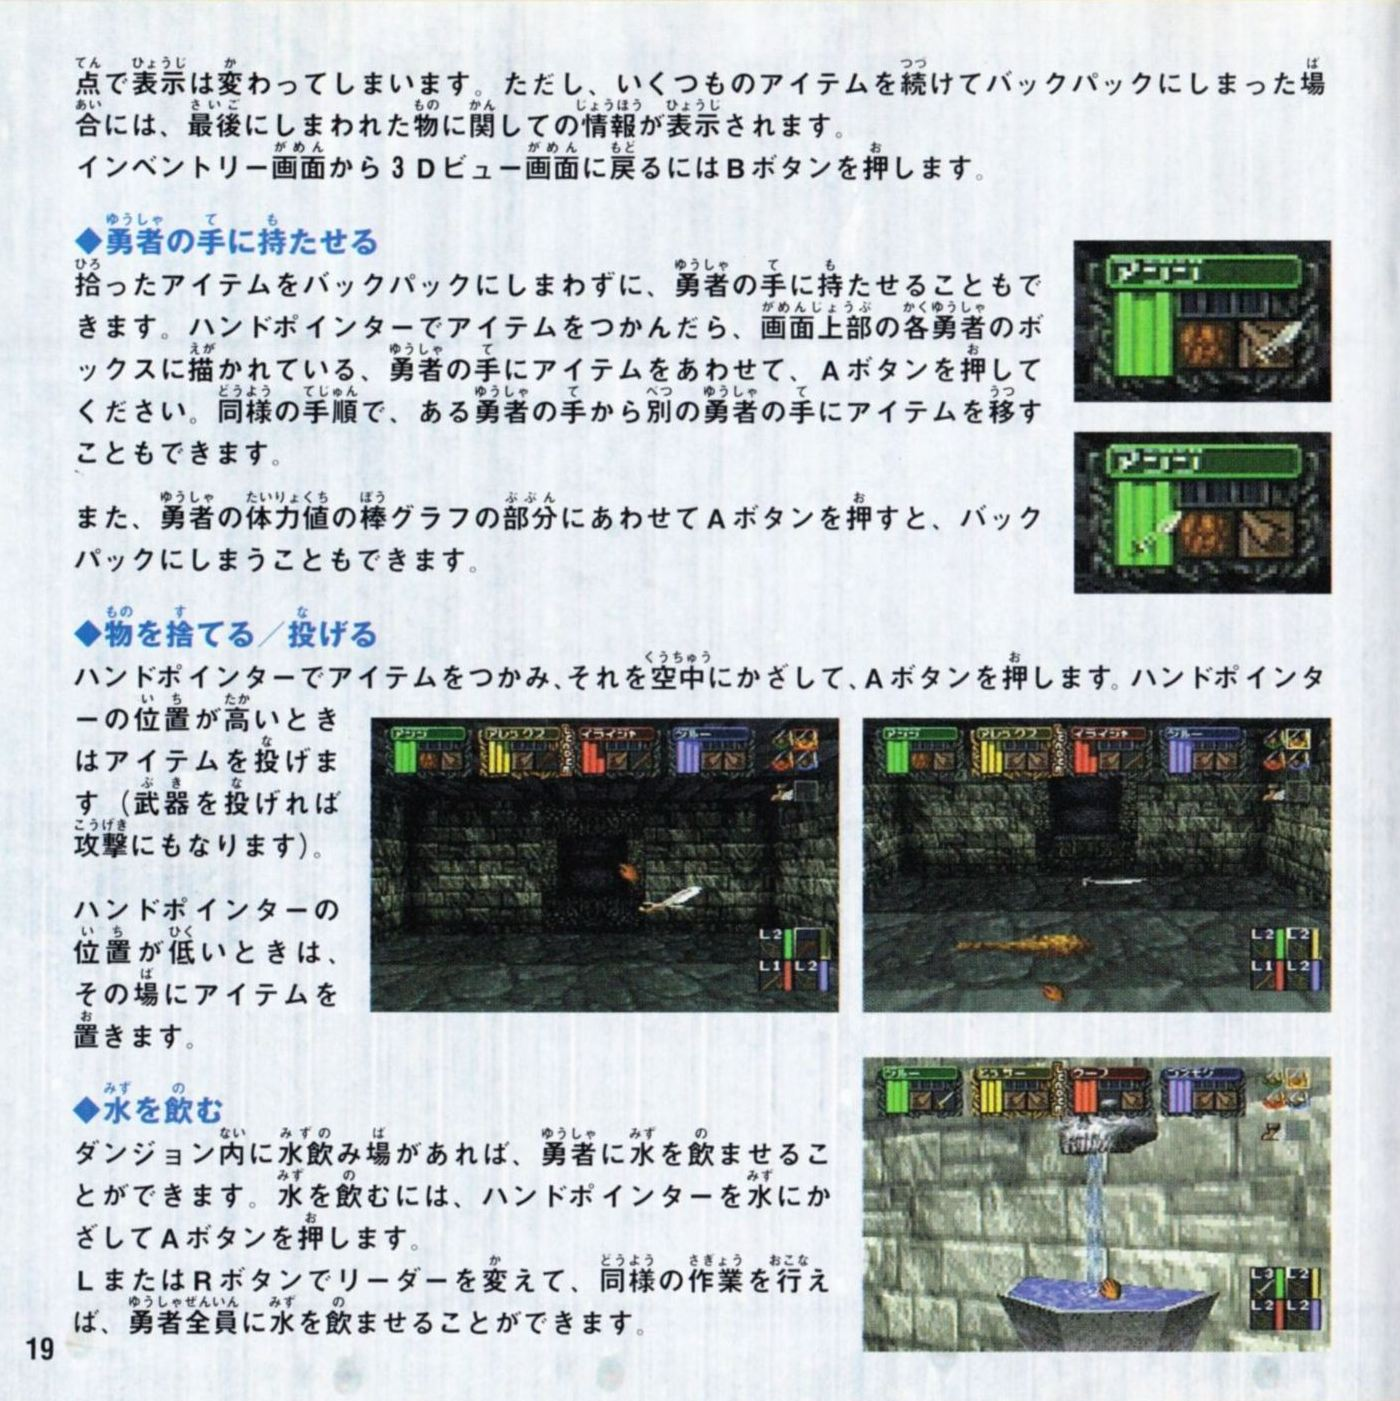 Game - Dungeon Master Nexus - JP - Sega Saturn - Booklet - Page 020 - Scan